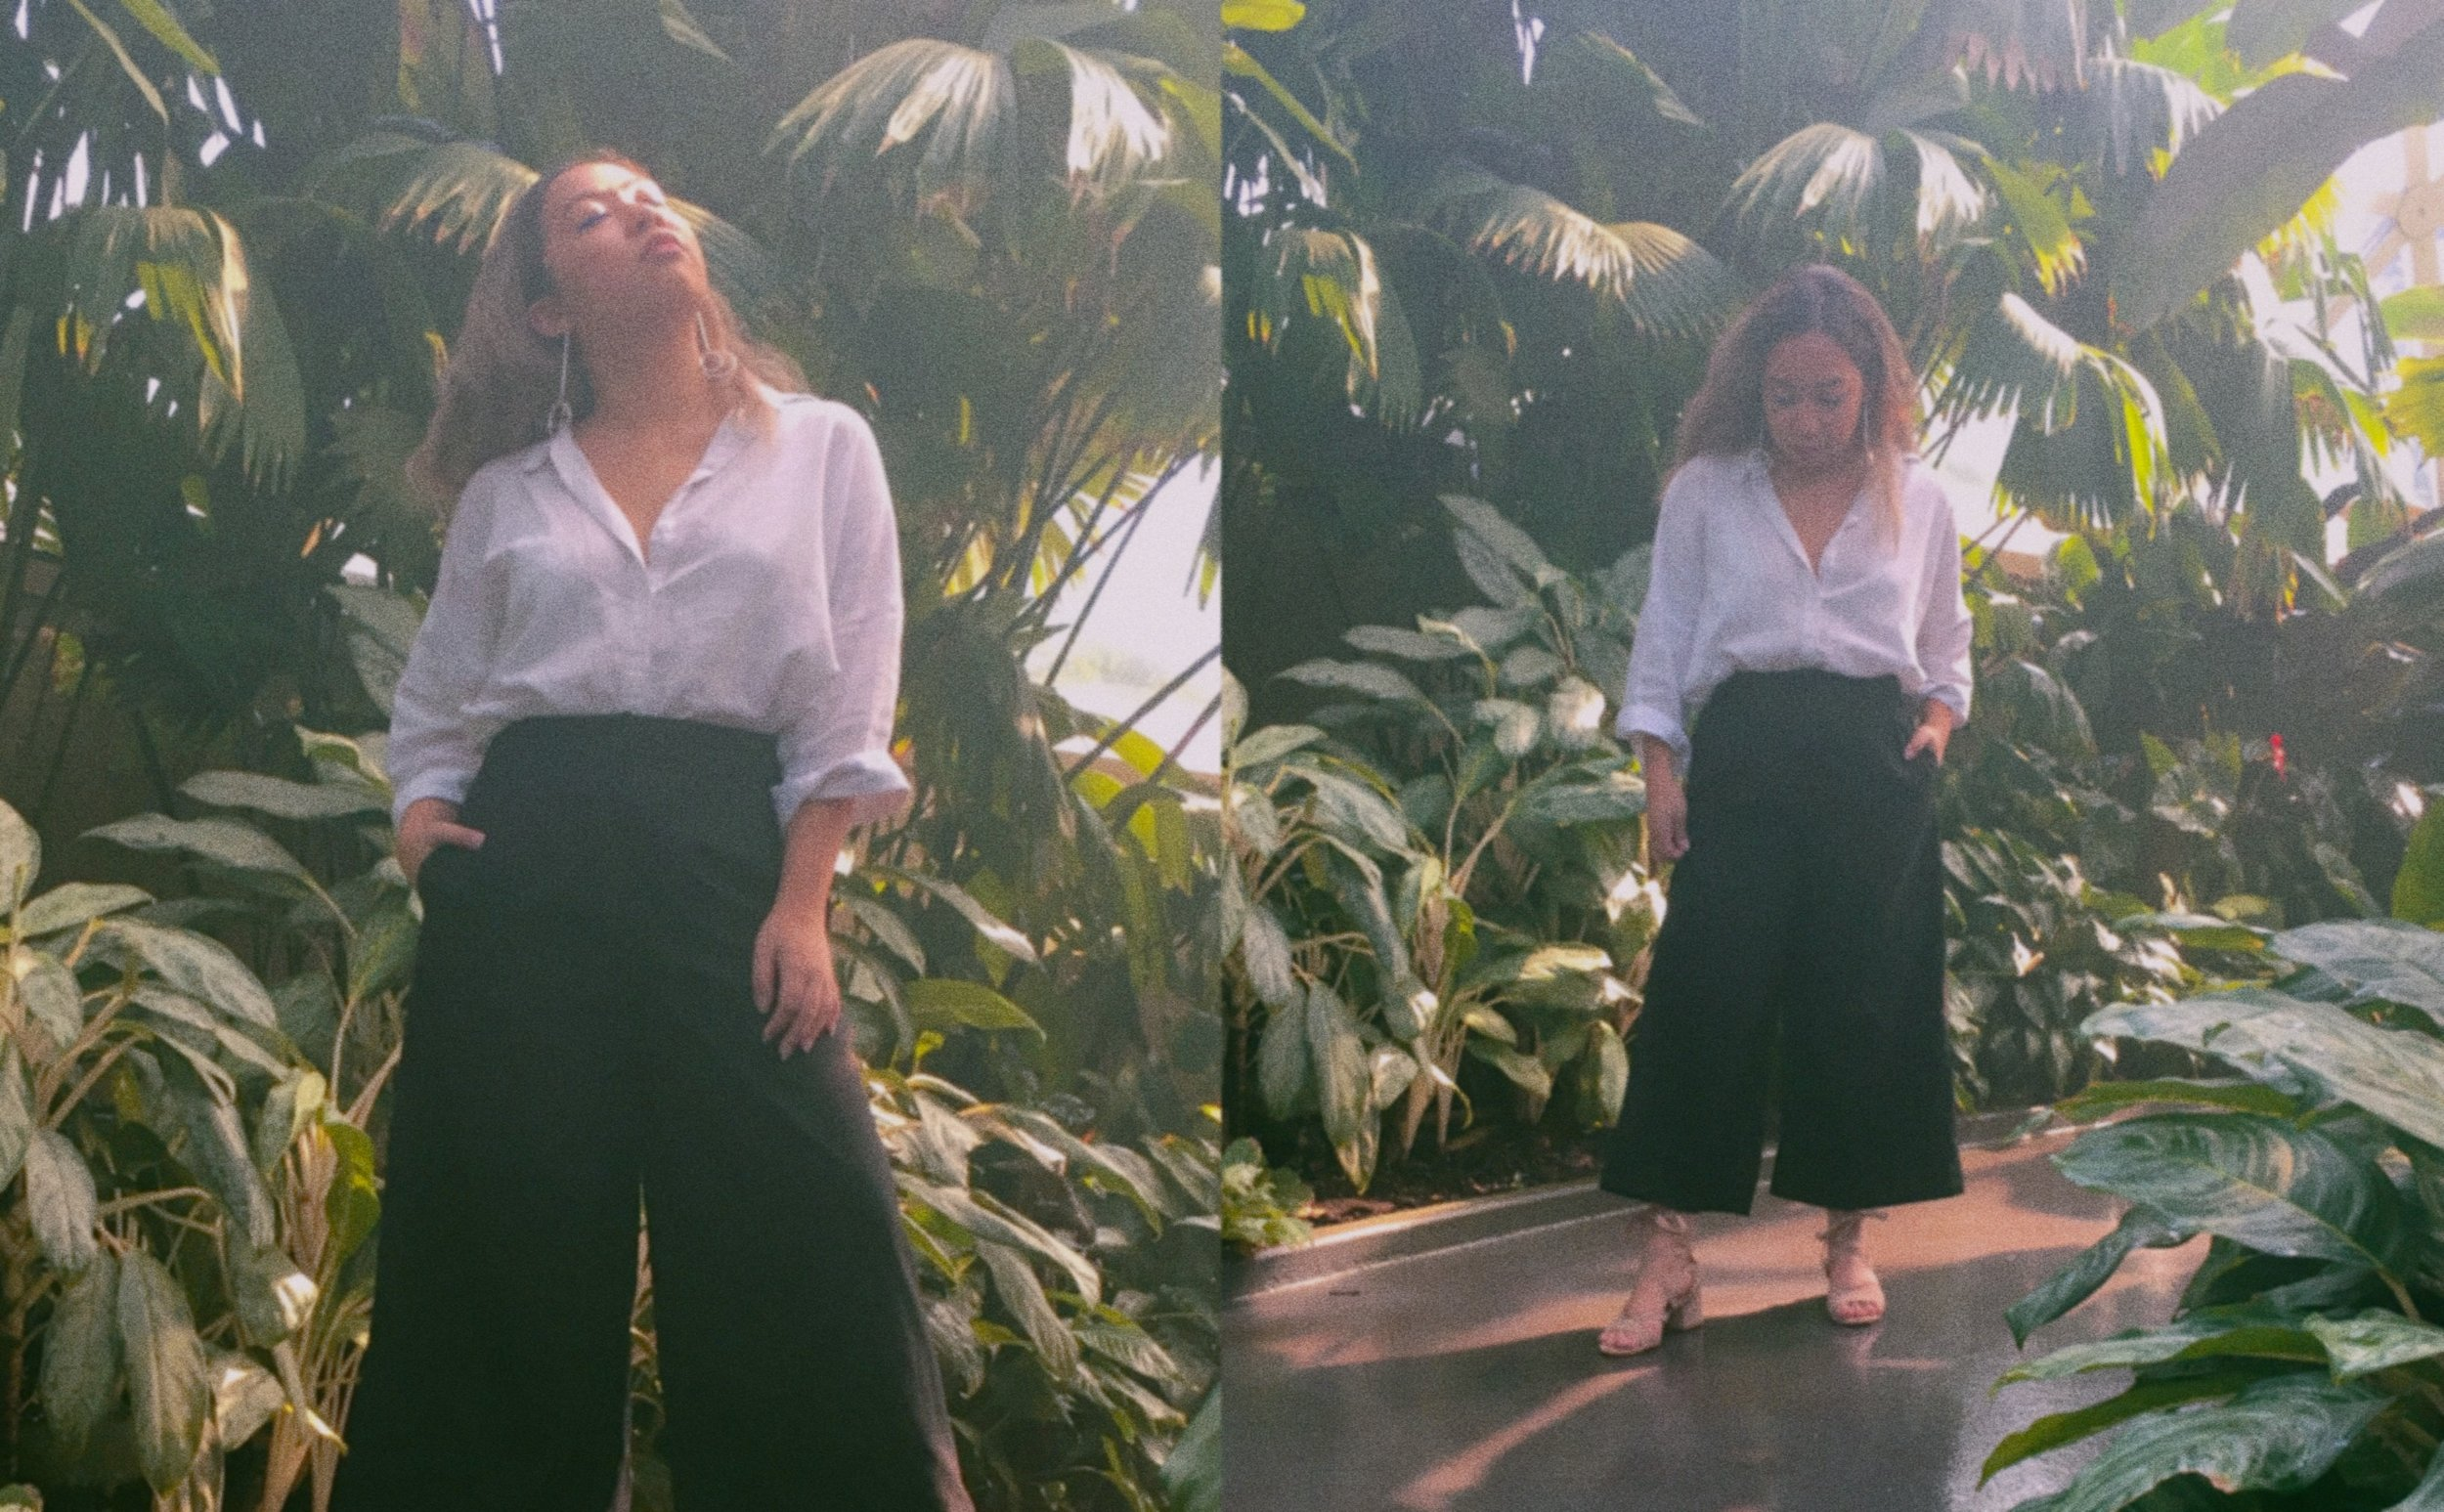 Blouse //  Princess Polly Elle Linen Shirt  Culottes // Thrifted  (Similar Item)   Sandals //  London Rebel Minllow  Earrings // Lovisa (Similar Items:  One ,  Two ,  Three )